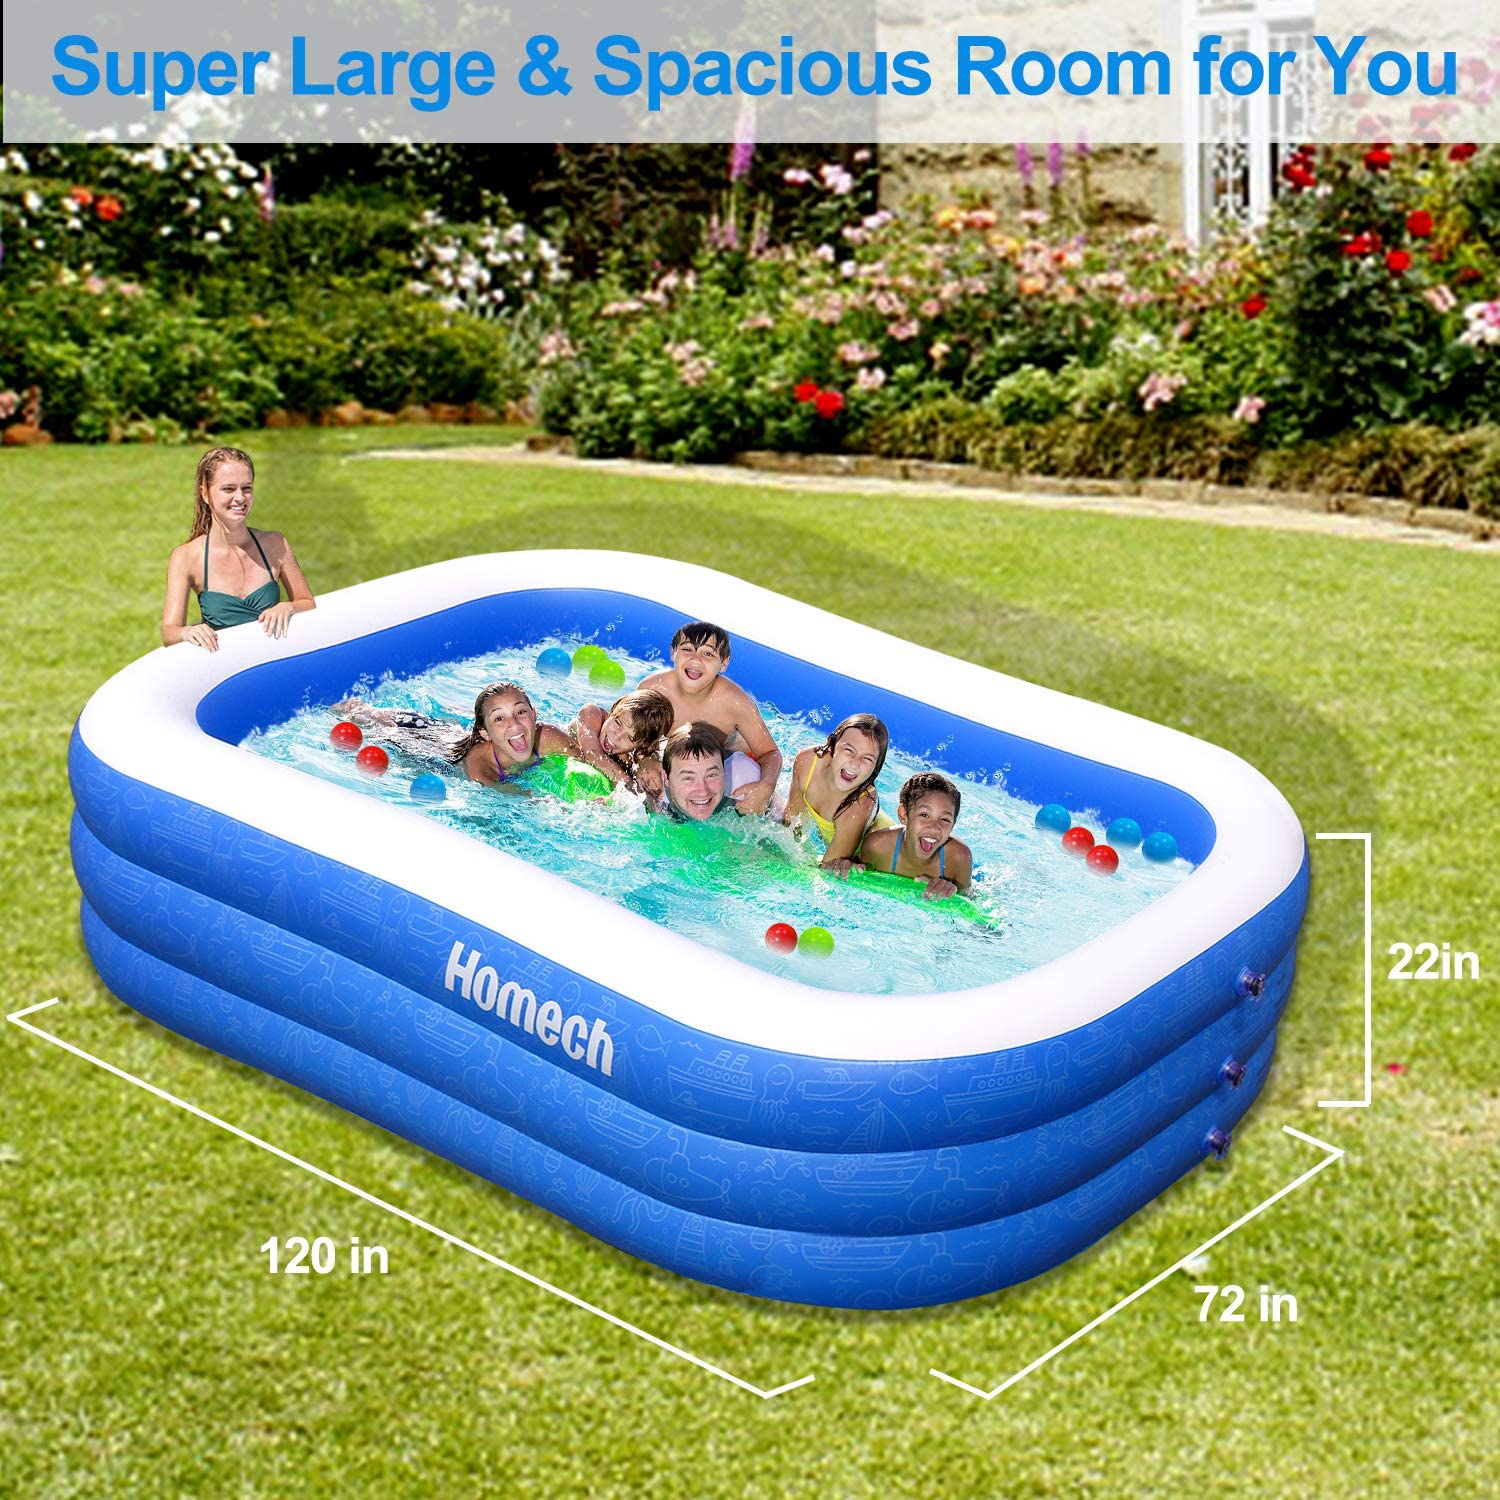 Family Inflatable Swimming Pool $139.99 + FREE Shipping!